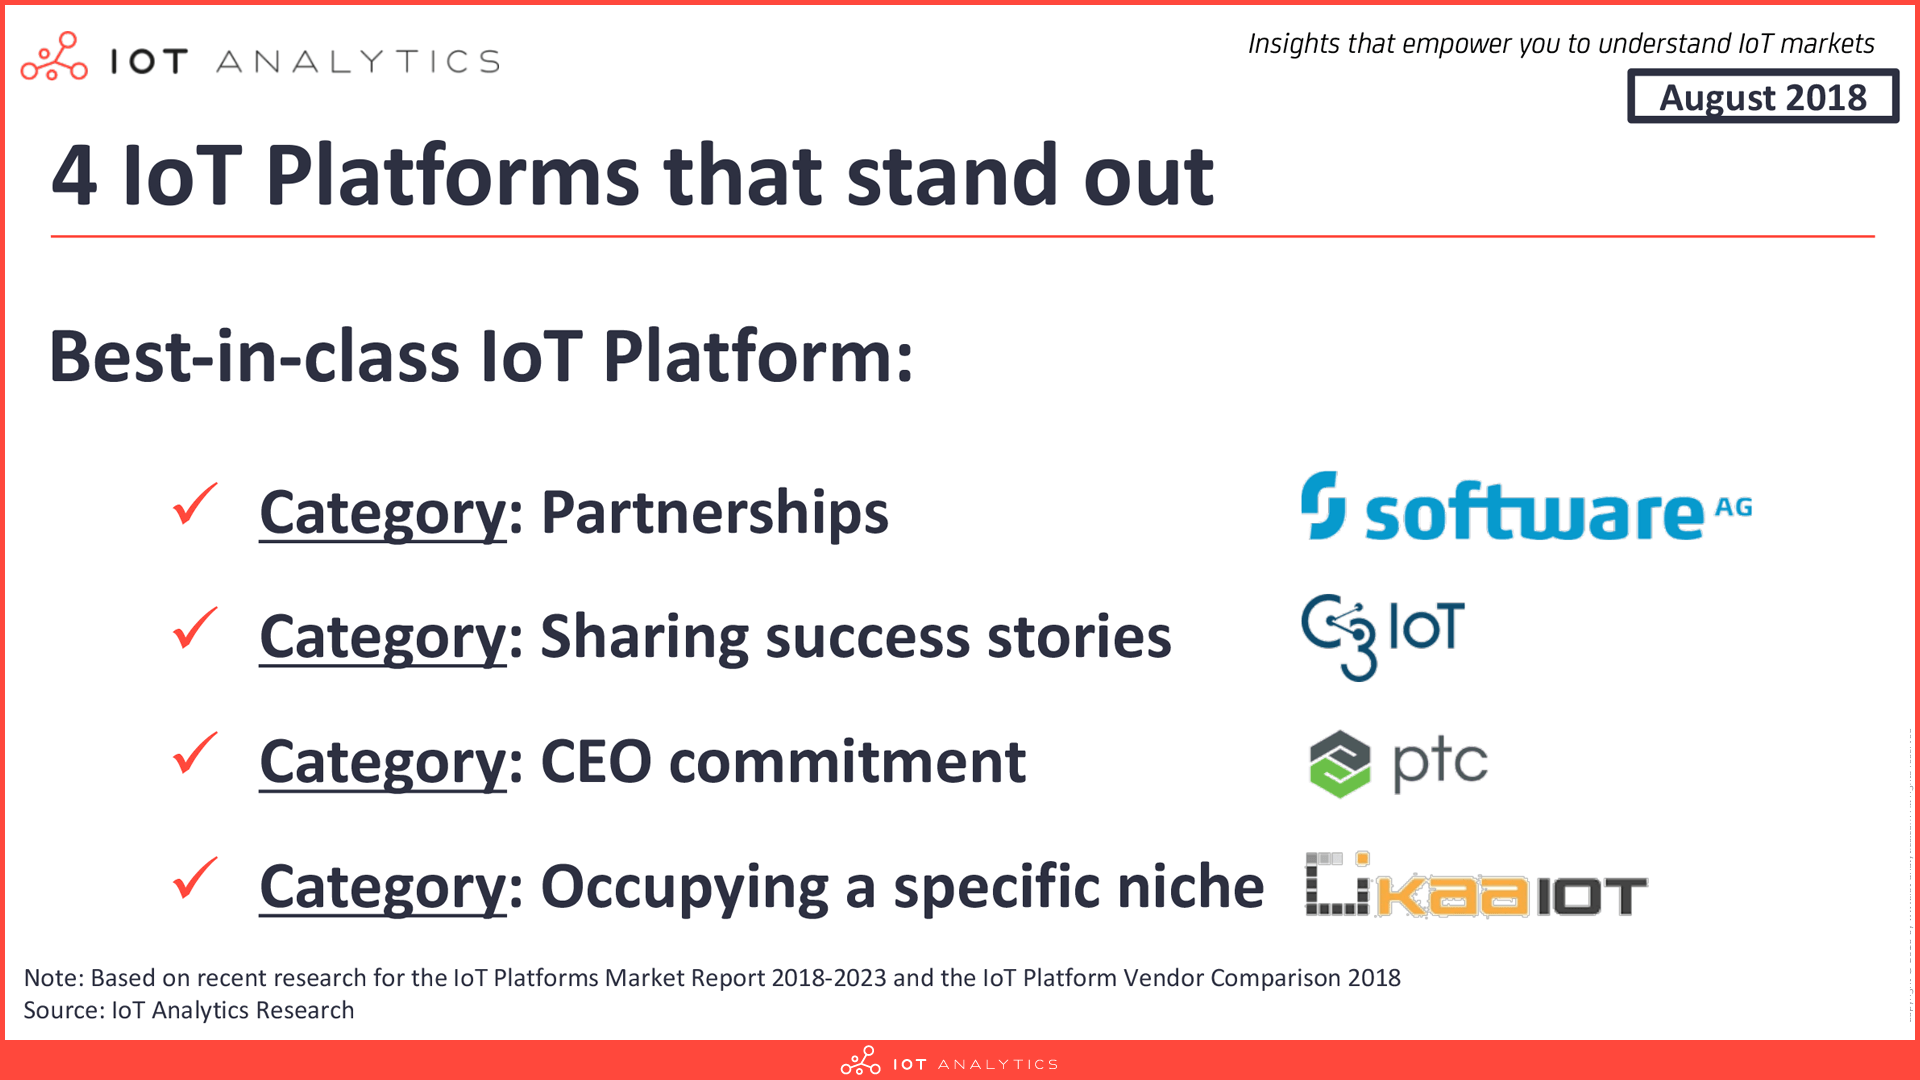 IoT Platform Vendor Best In Class IoT Platforms by Category